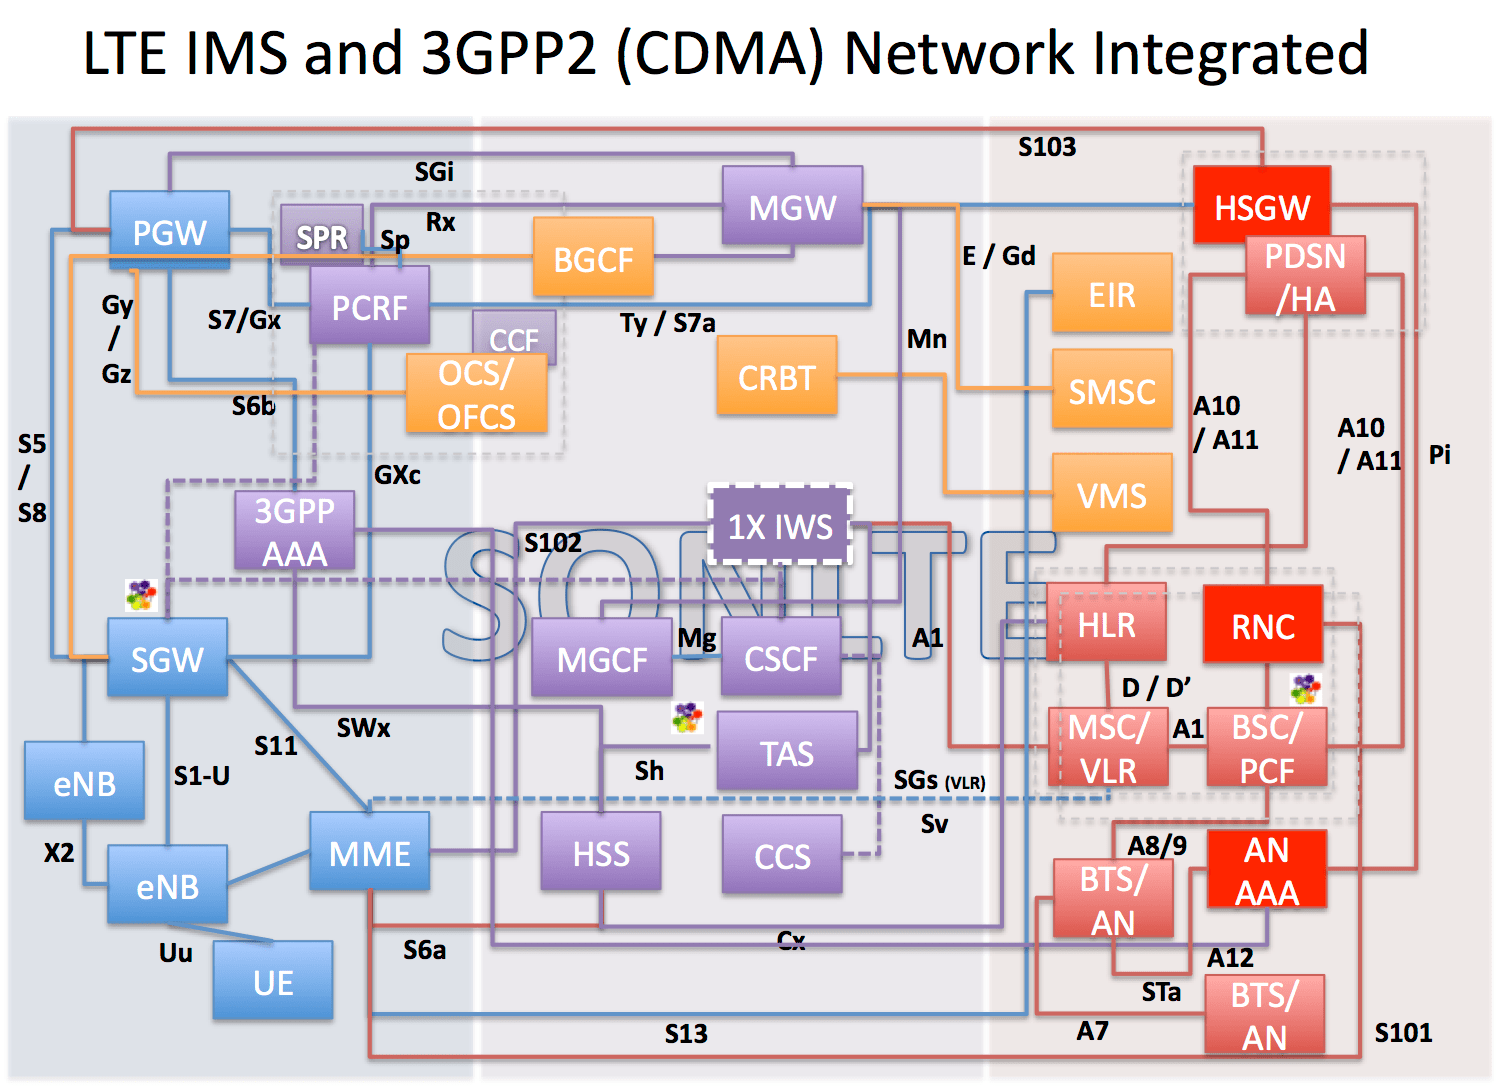 hight resolution of lte cdma 3gpp2 ims network diagram ytd2525 dns network diagram cdma phone network diagram